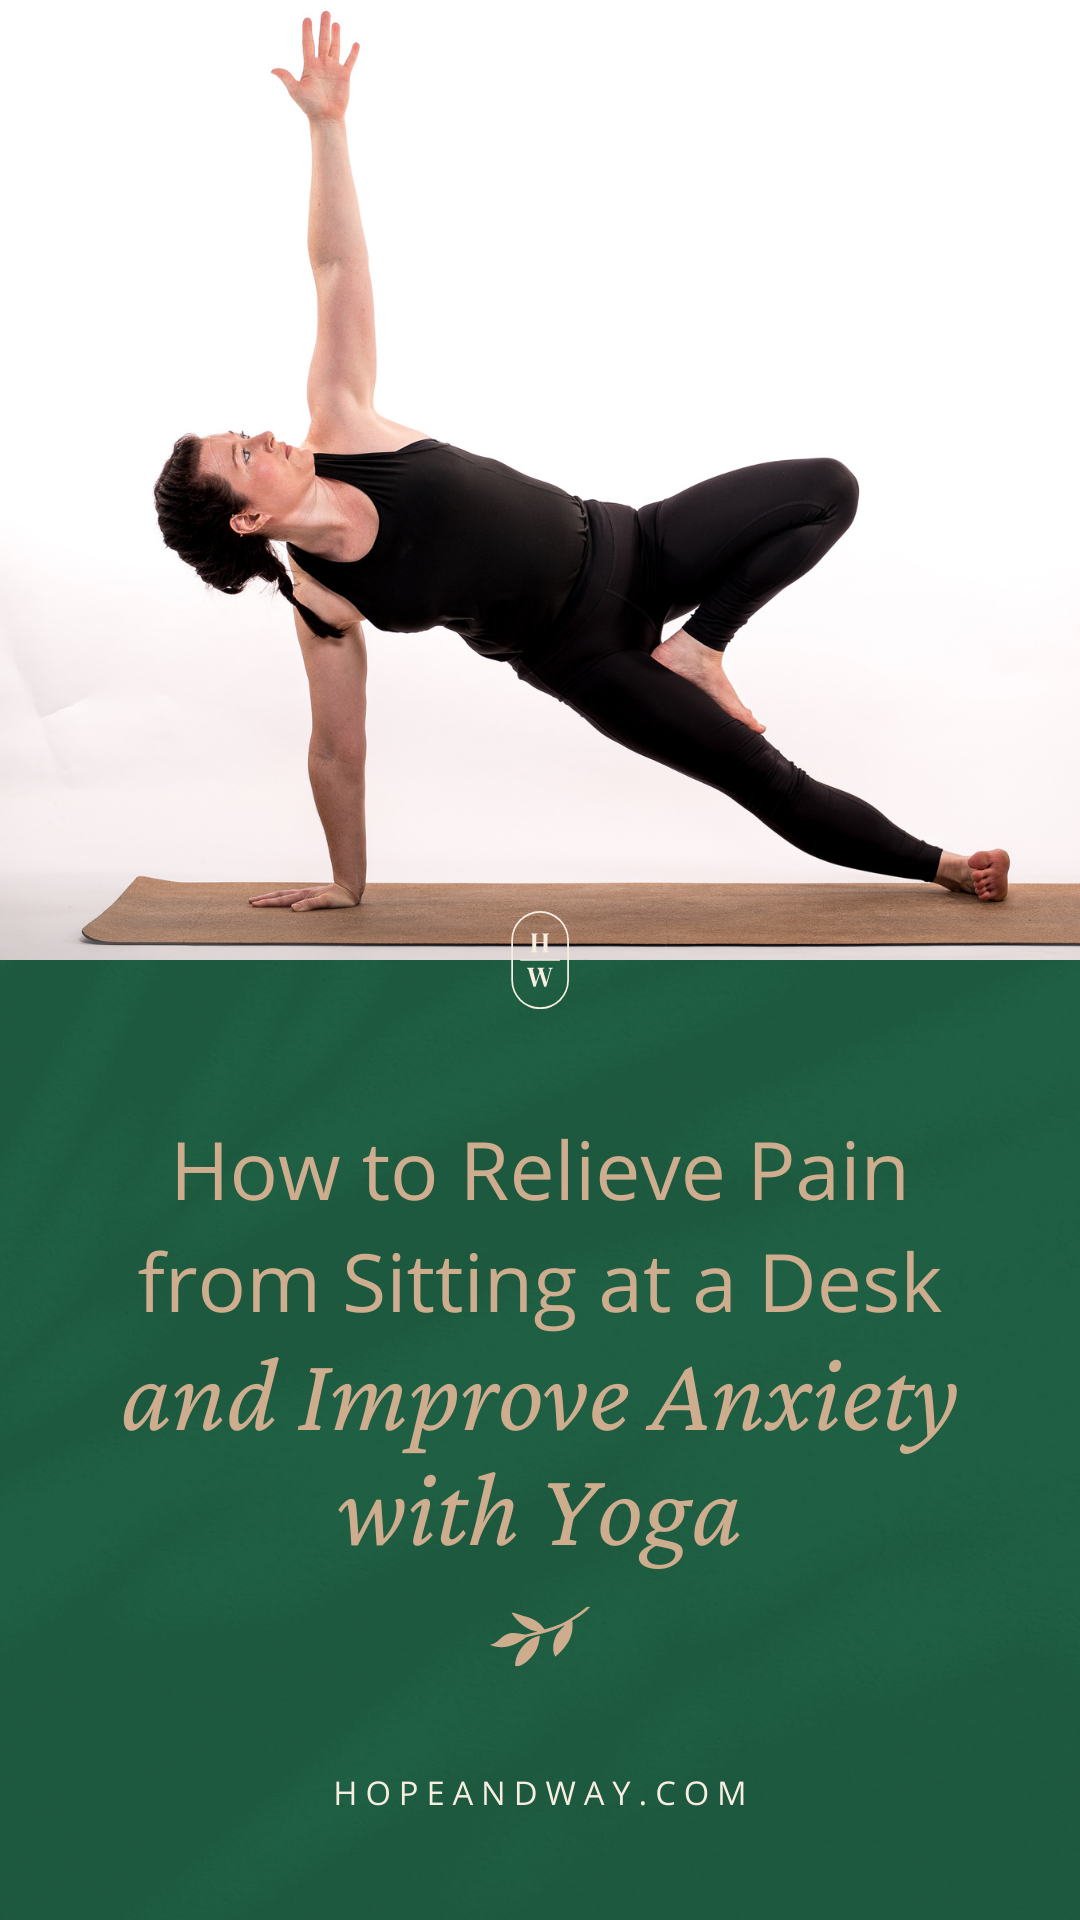 How to Relieve Pain from Sitting at a Desk and Improve Anxiety with Yoga? Interview with Suzanne Pikney